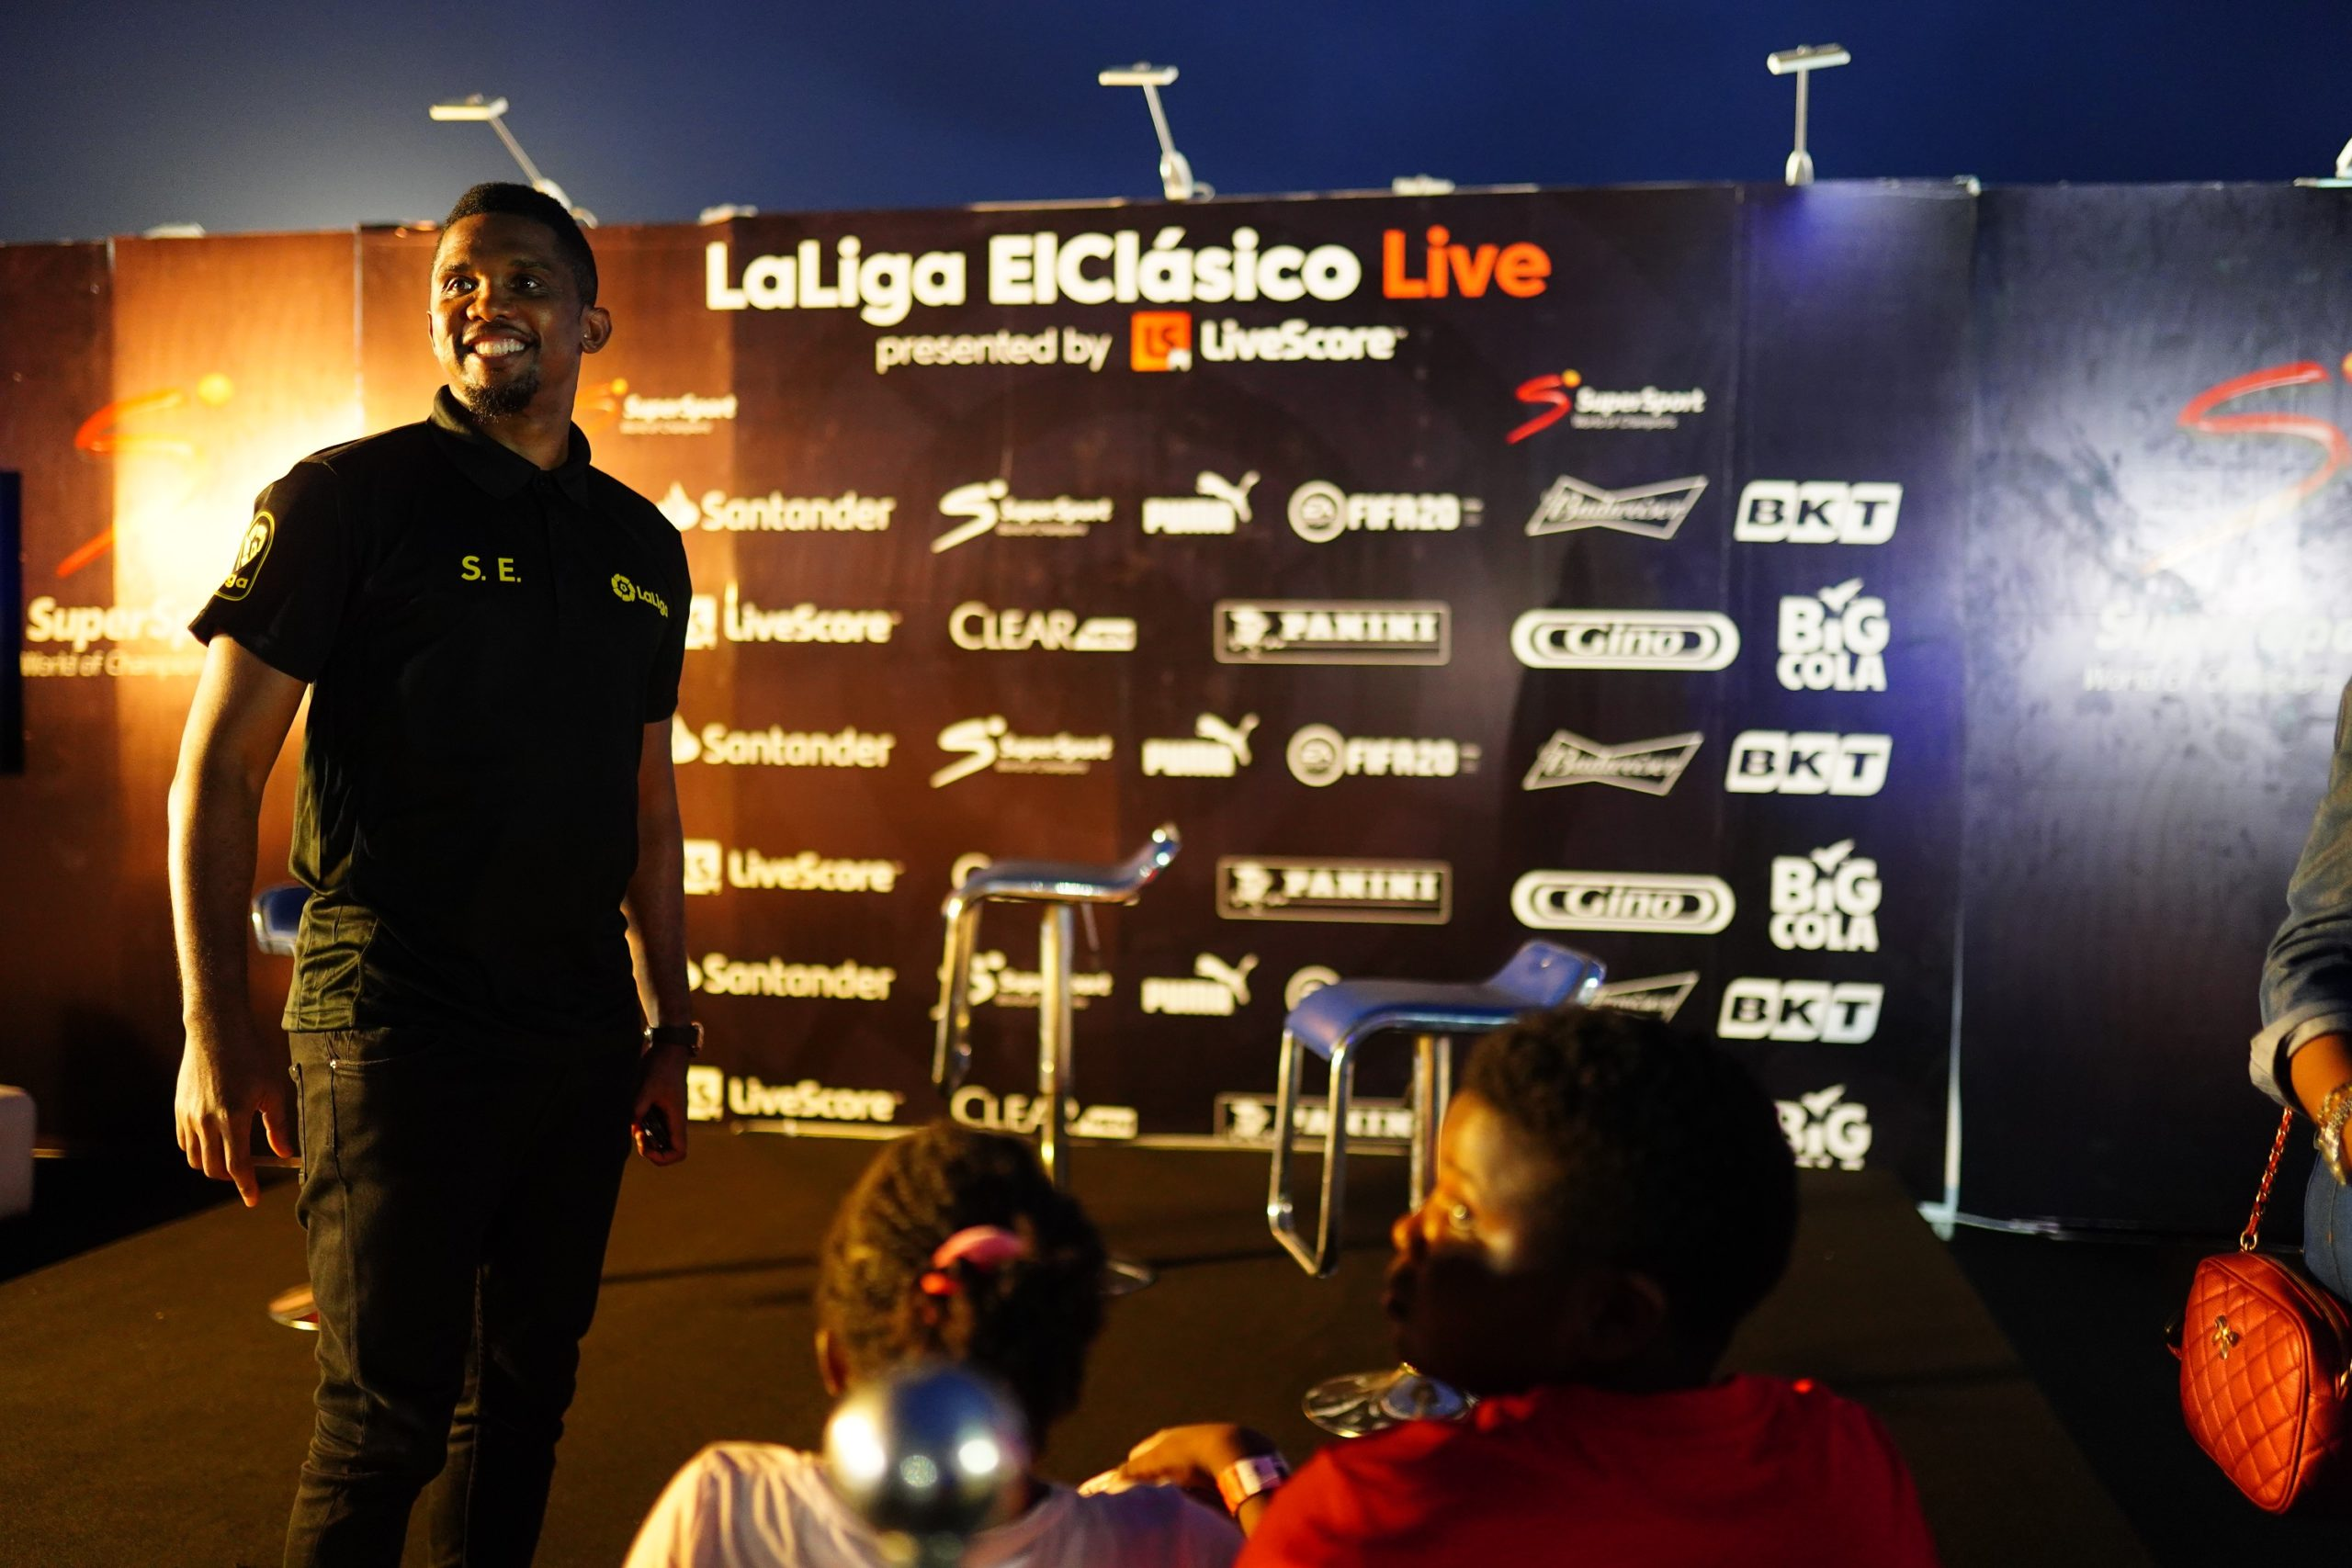 LaLiga Delights Over 1000 Fans With The First ElClásico Viewing Party In Lagos (Photos) - Brand Spur